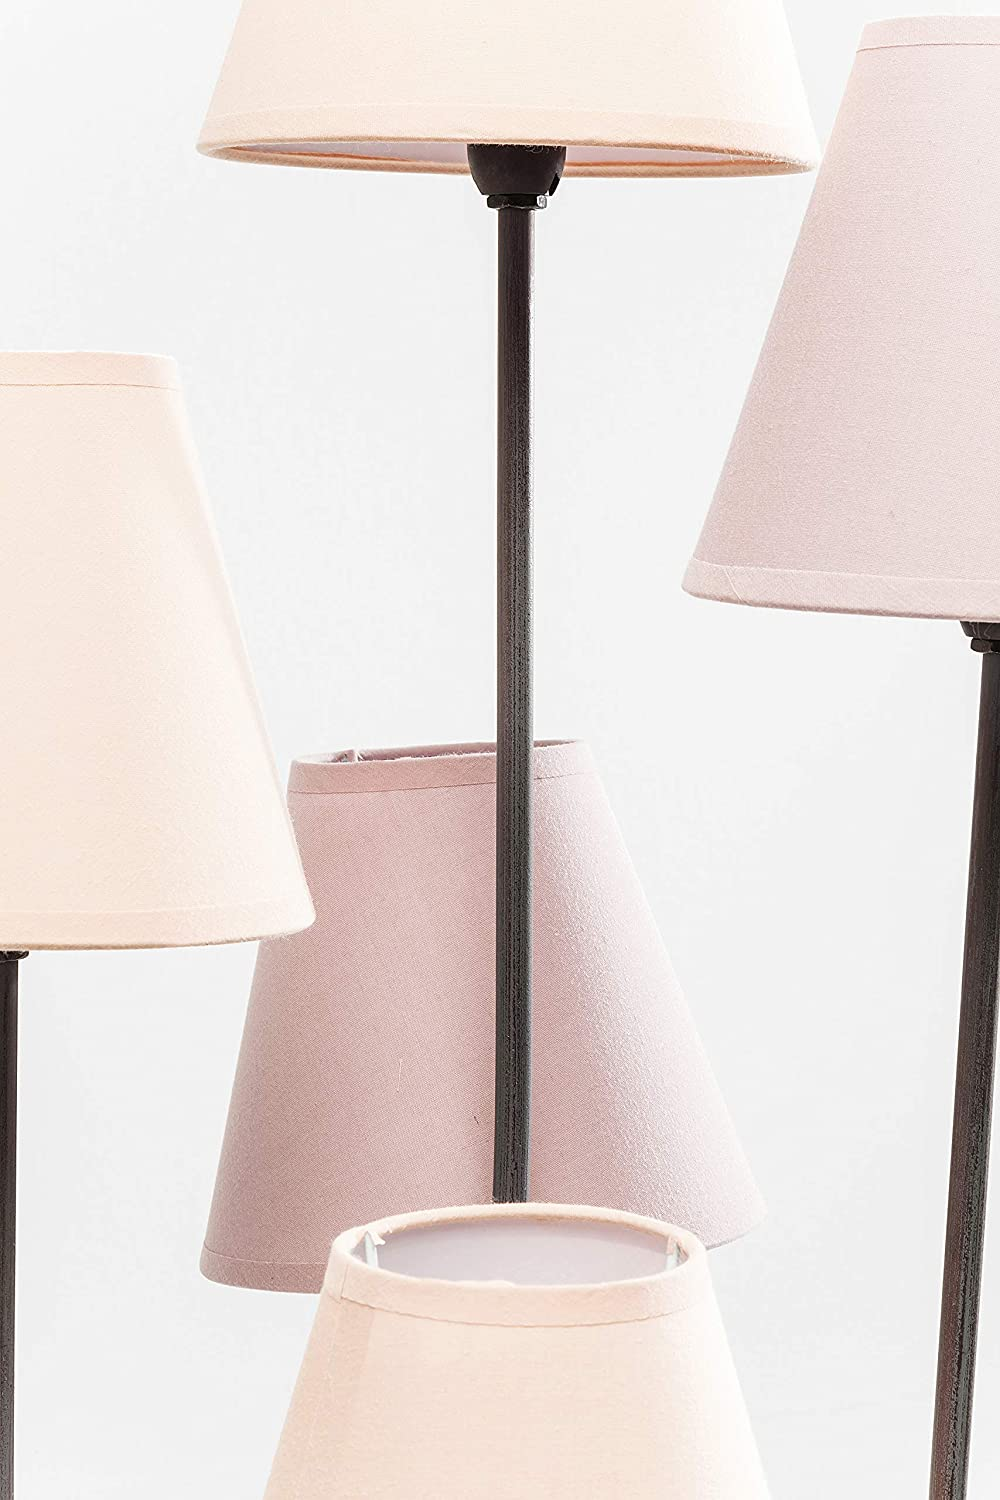 stehlampe pink trendy papier steh leuchte mm asia lila stand lampe japan licht sule papierlampe. Black Bedroom Furniture Sets. Home Design Ideas